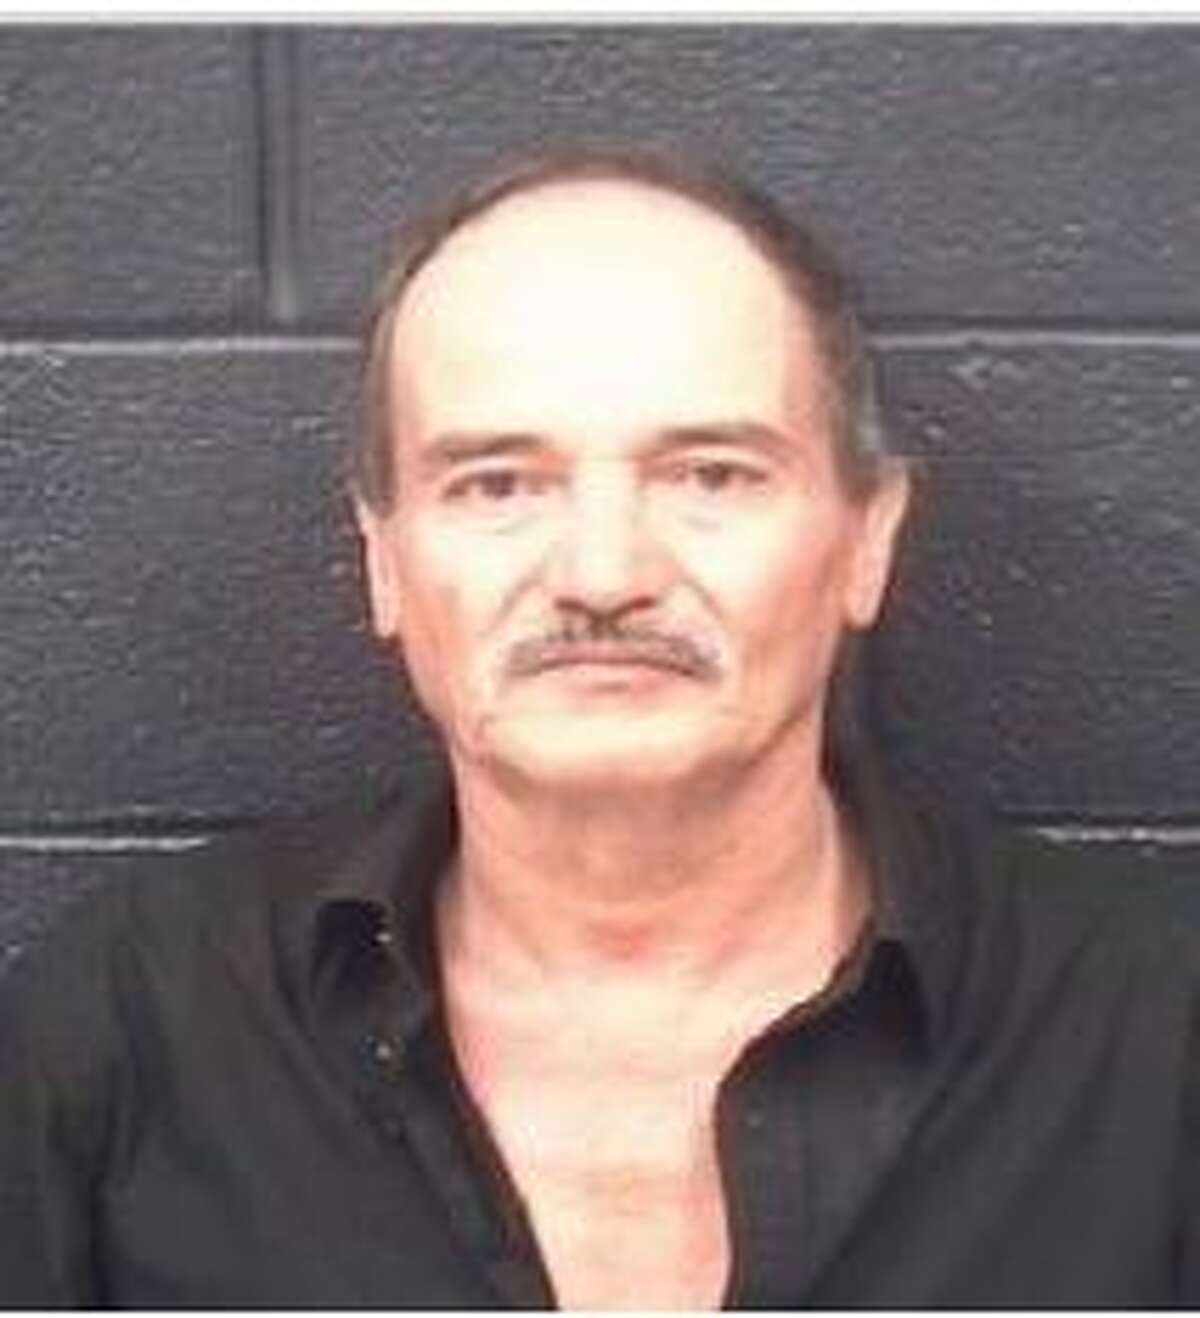 Jose De JesusGutierrez was charged with driving while intoxicated.